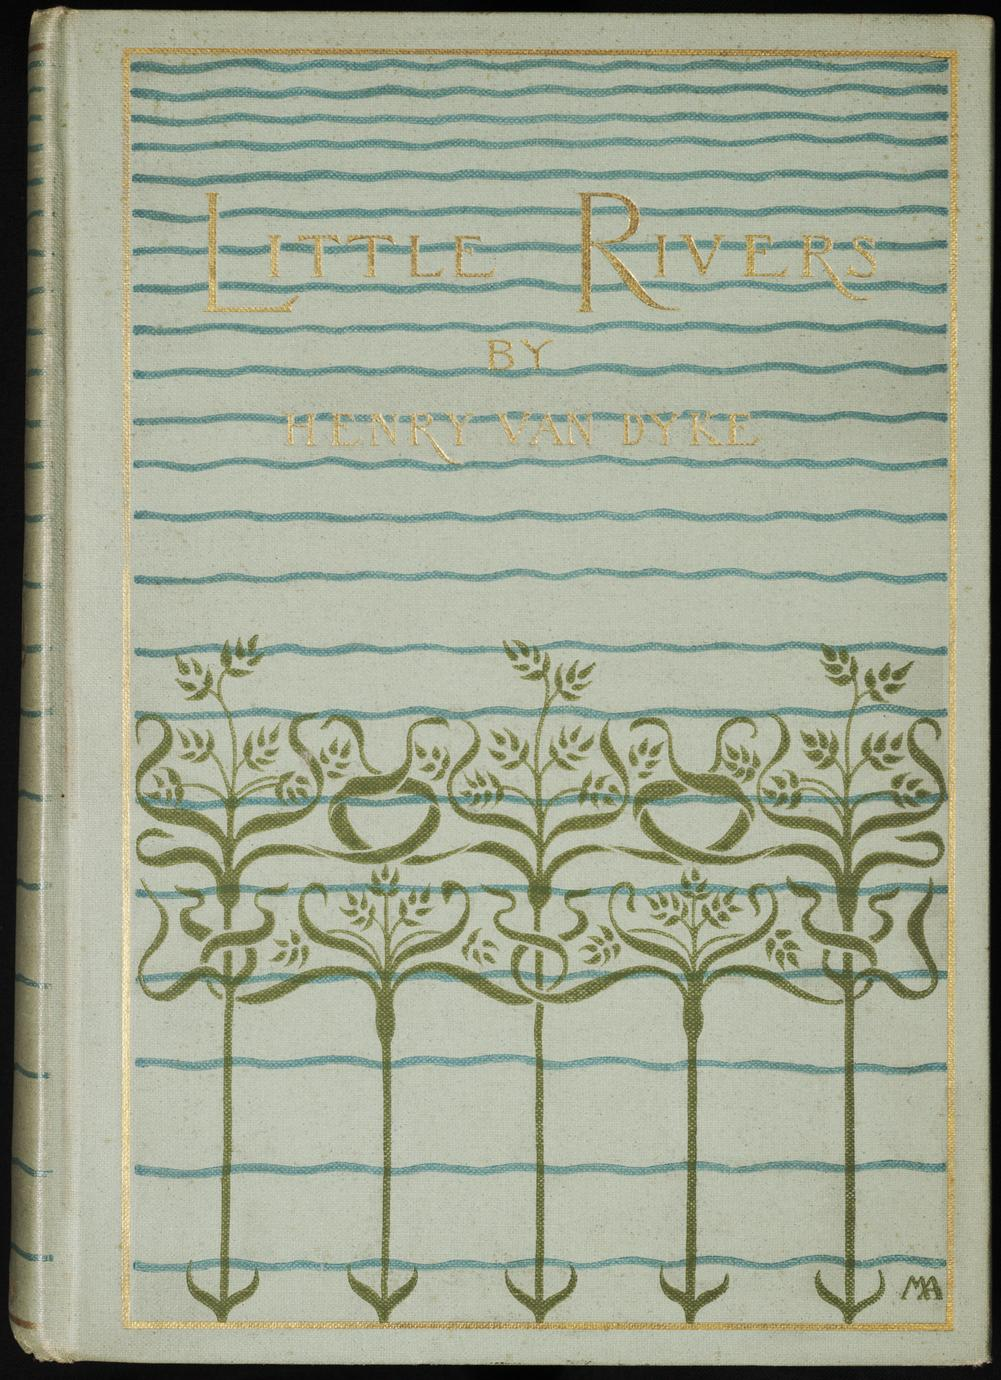 Little rivers : a book of essays in profitable idleness (1 of 3)